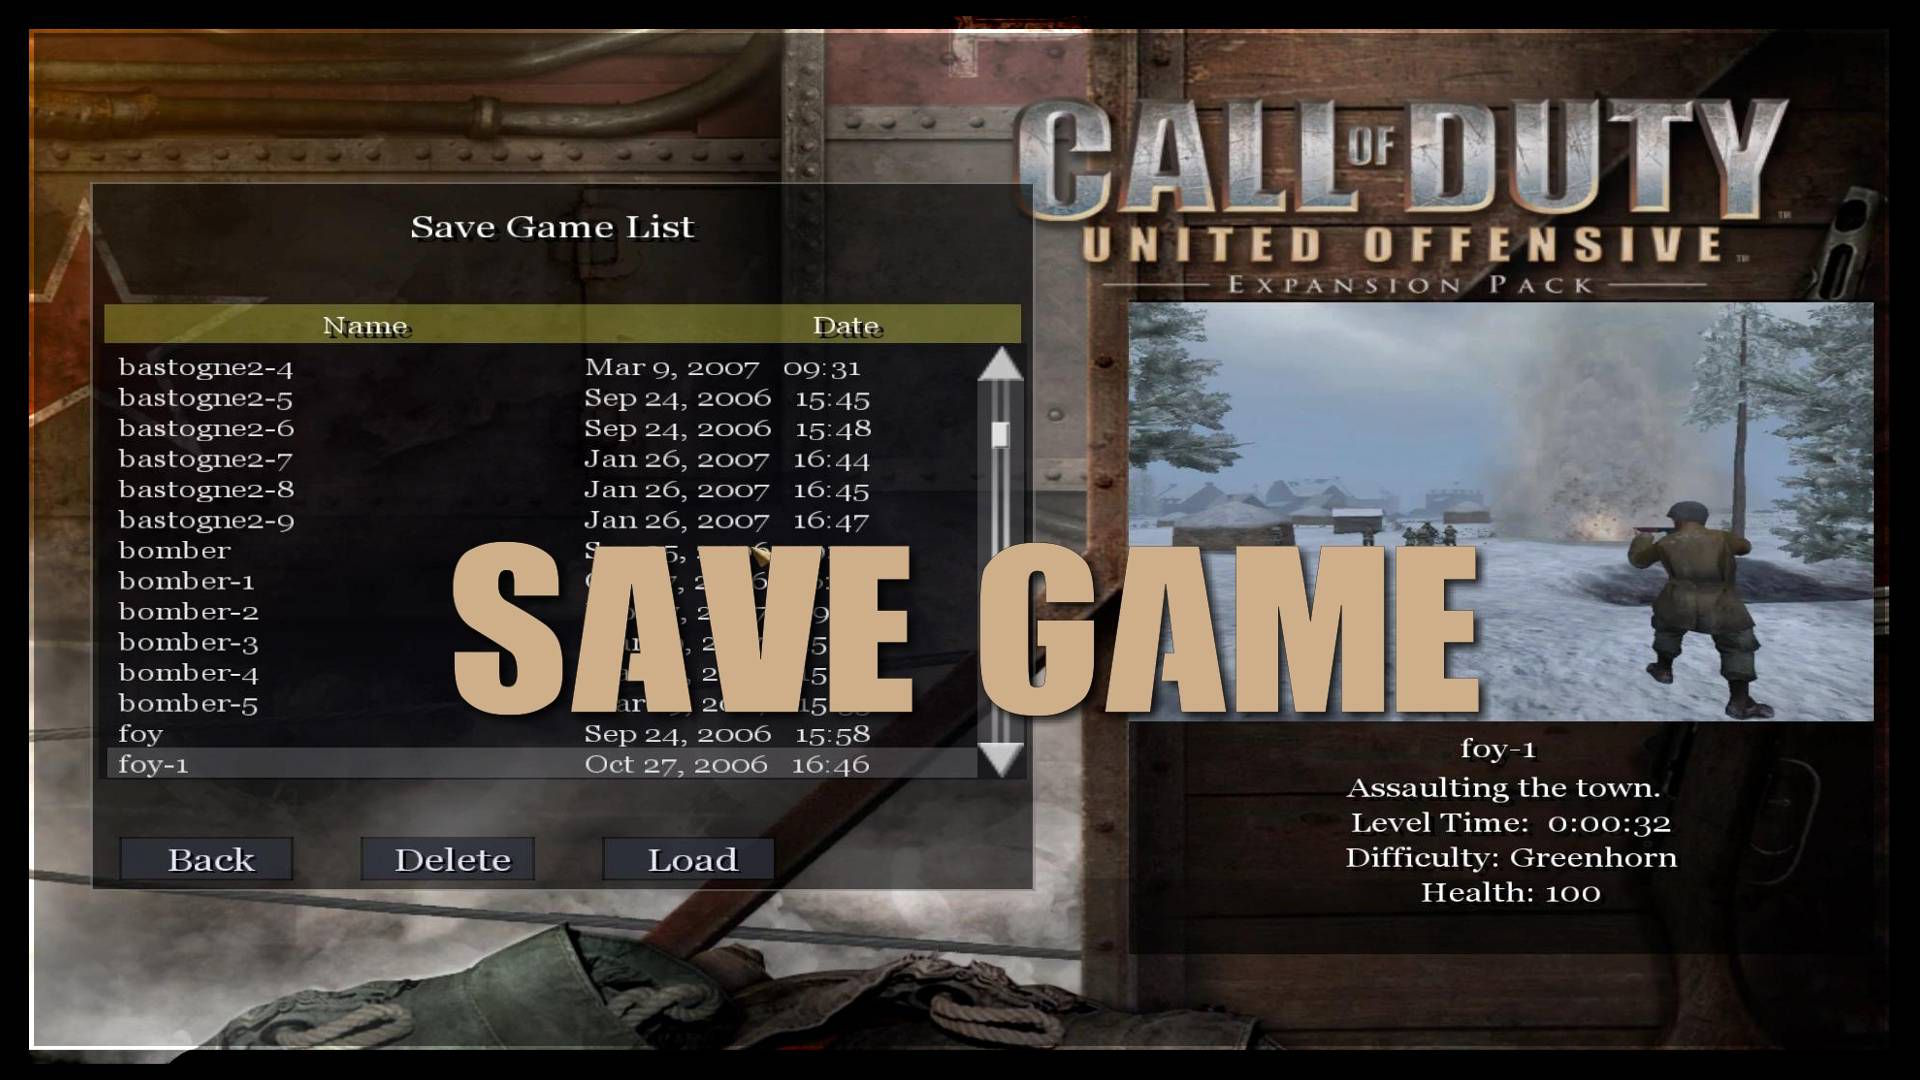 Call of Duty United Offensive Save Game